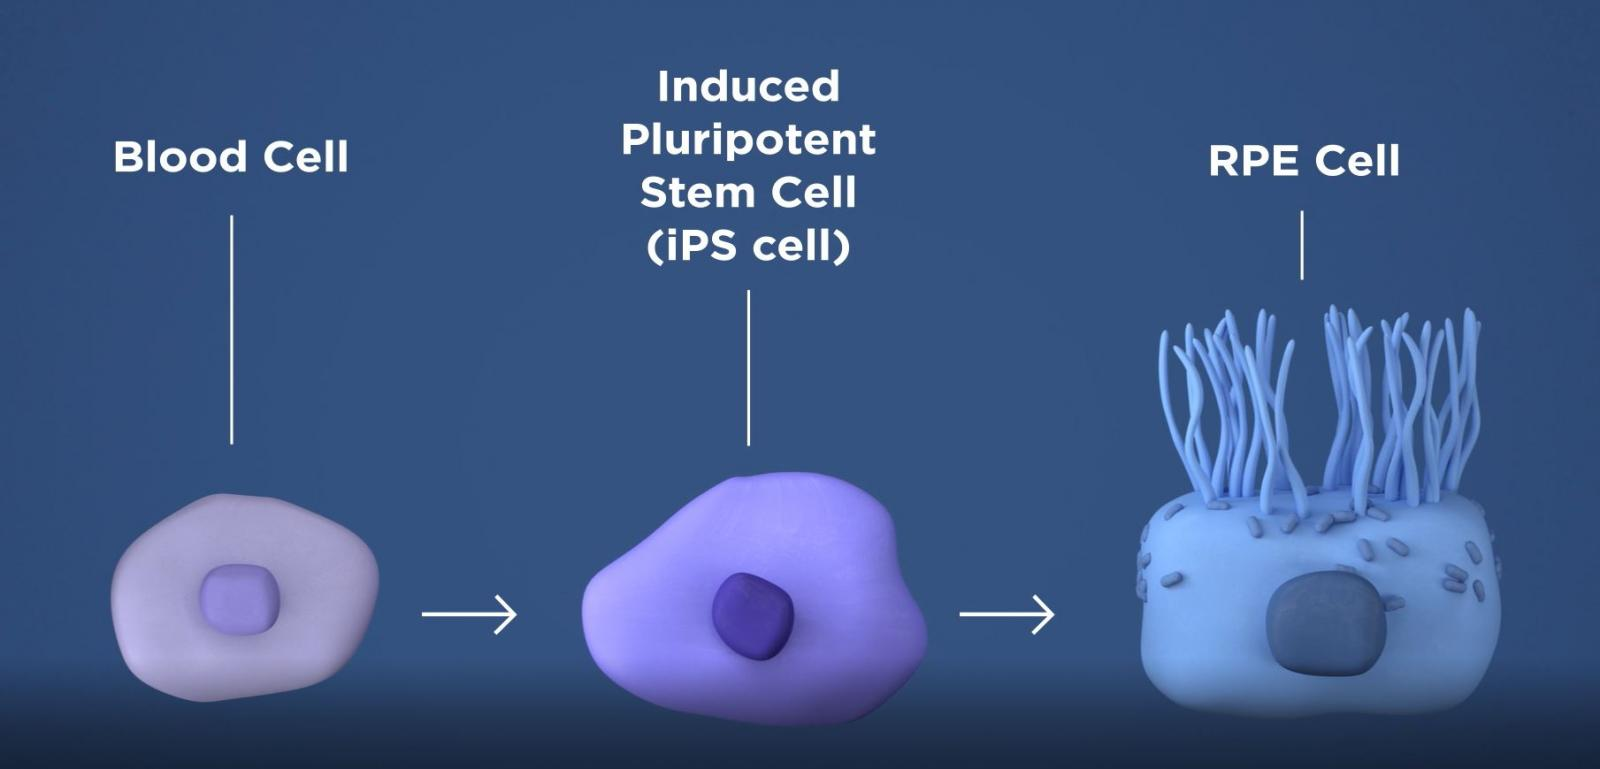 Blood cells are converted into induced pluripotent stem cells, which are them made into retinal pigment epithelial cells (RPE).